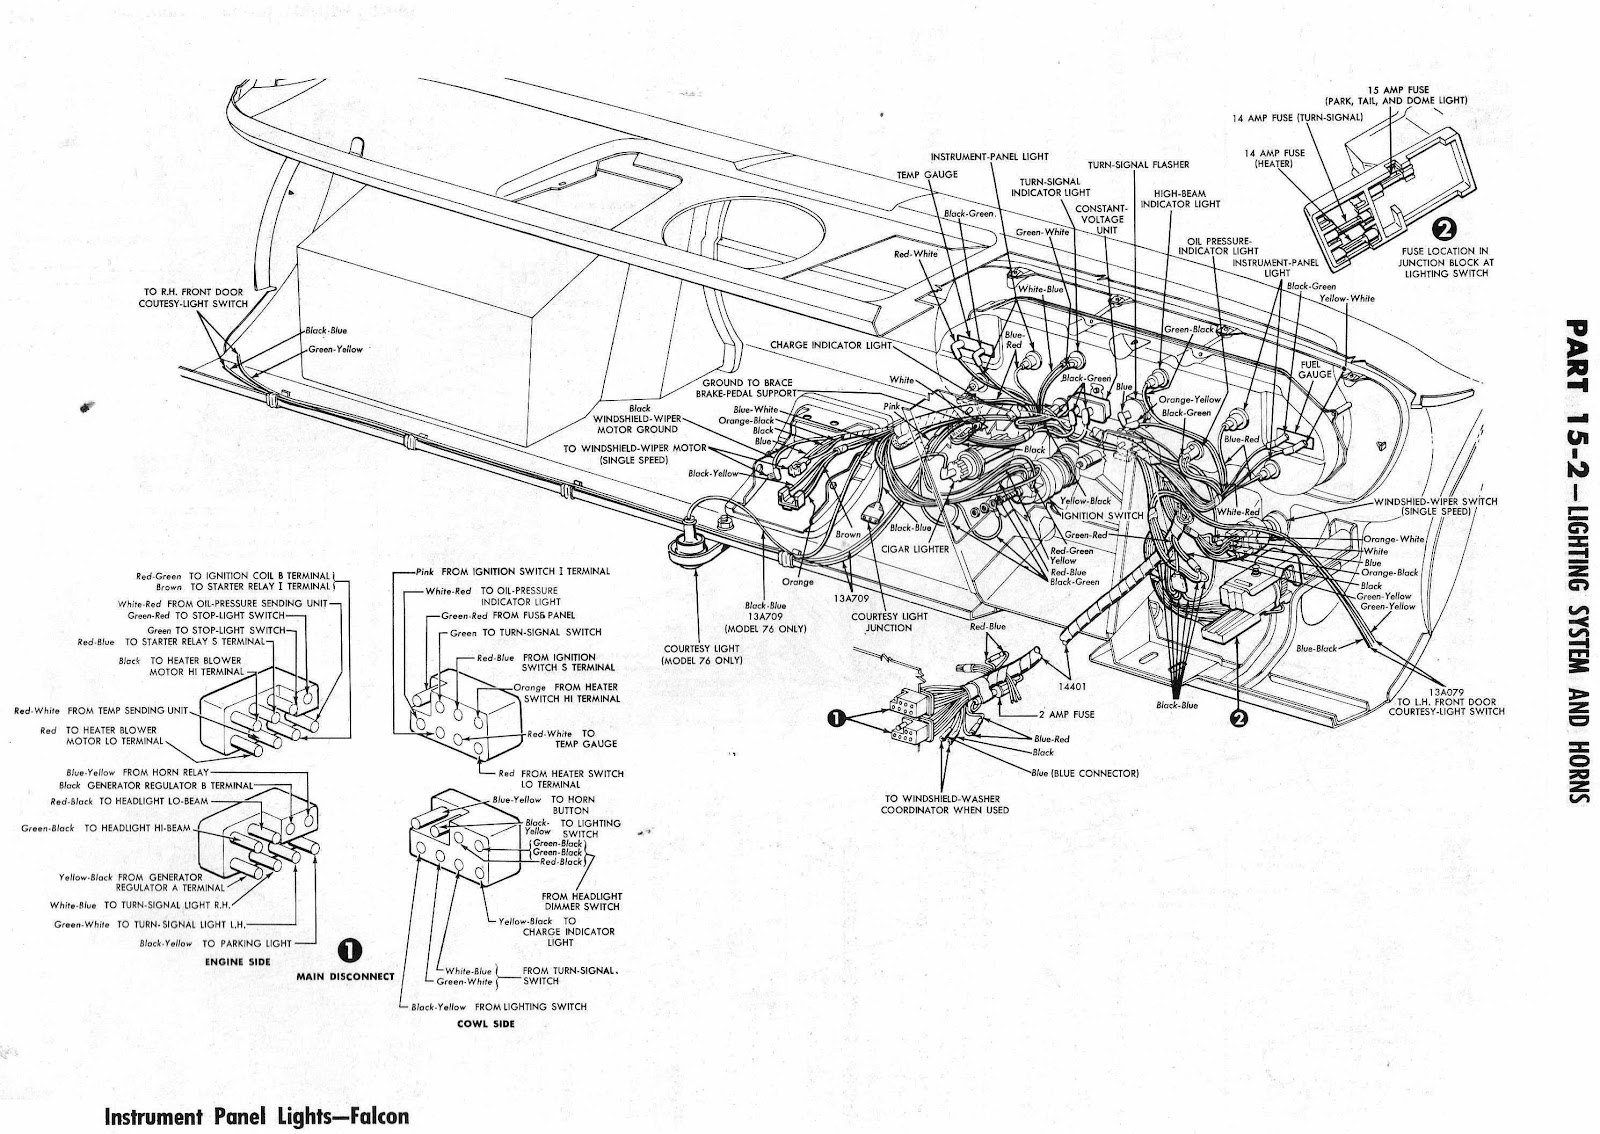 Ford+Falcon+1964+Lighting+System+and+Horns+Wiring+Diagram au falcon wiring diagram falcon guide \u2022 wiring diagrams j squared co  at crackthecode.co